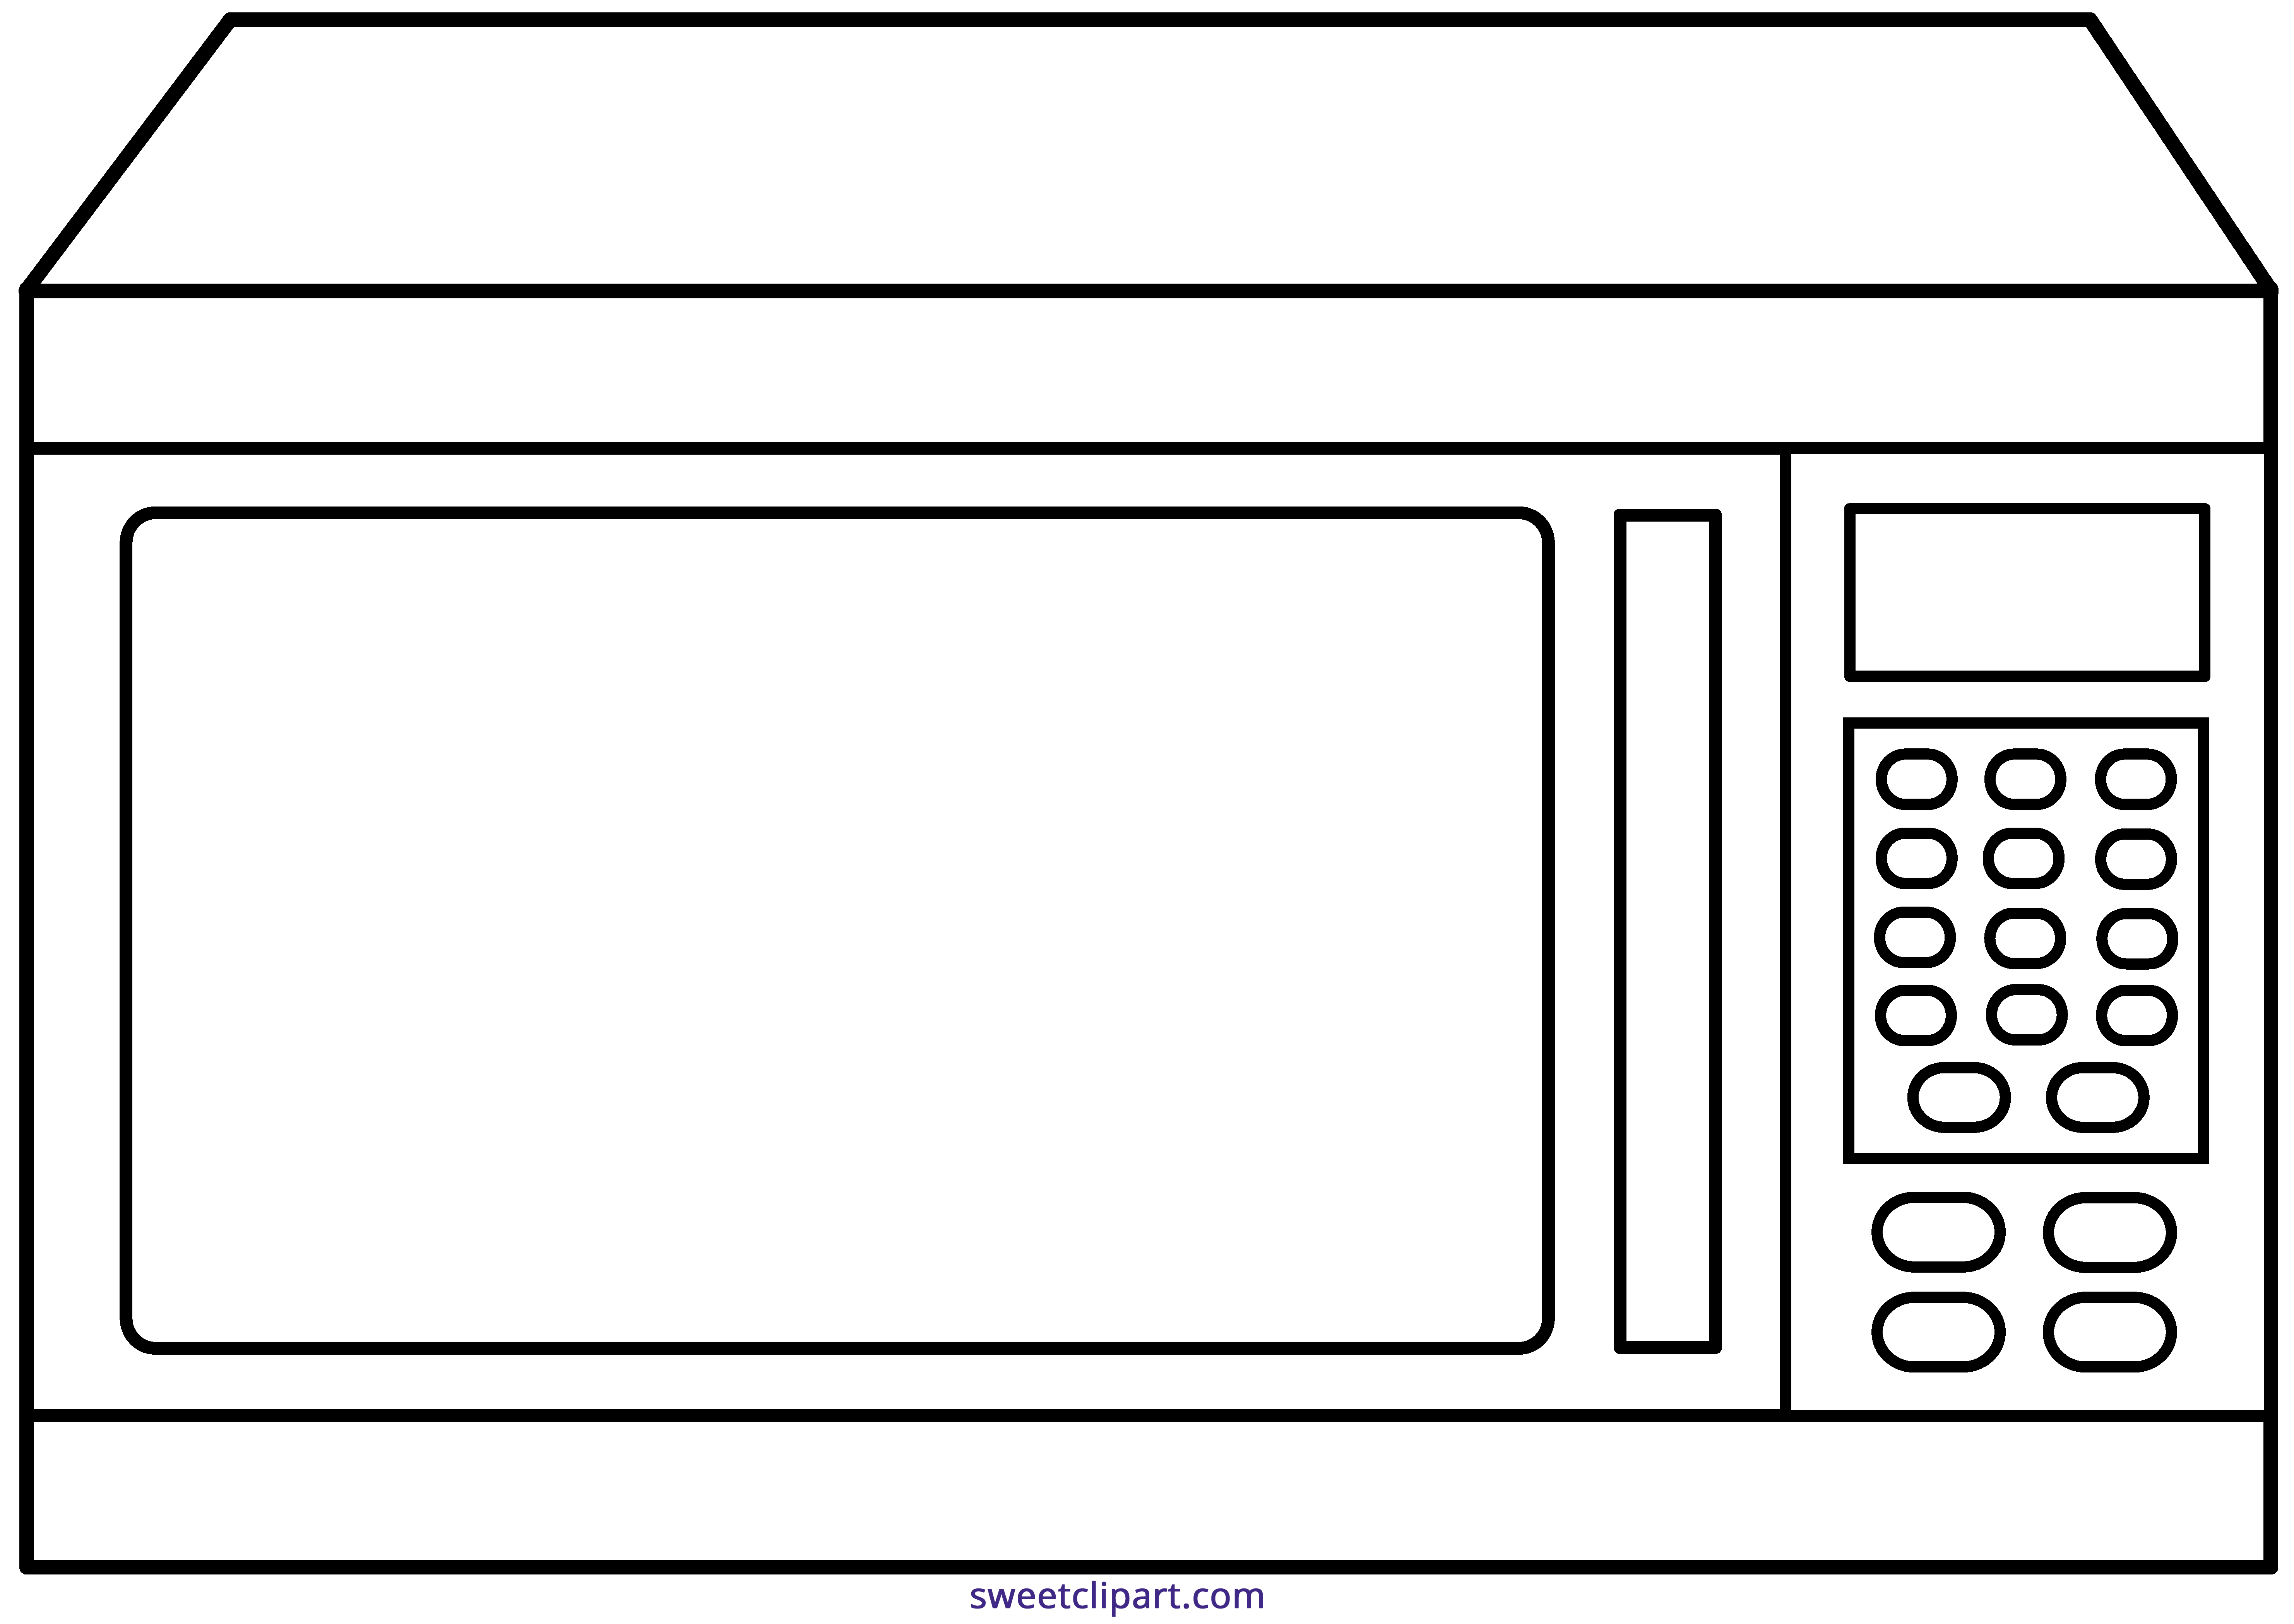 Outline sweet clip art. Microwave clipart